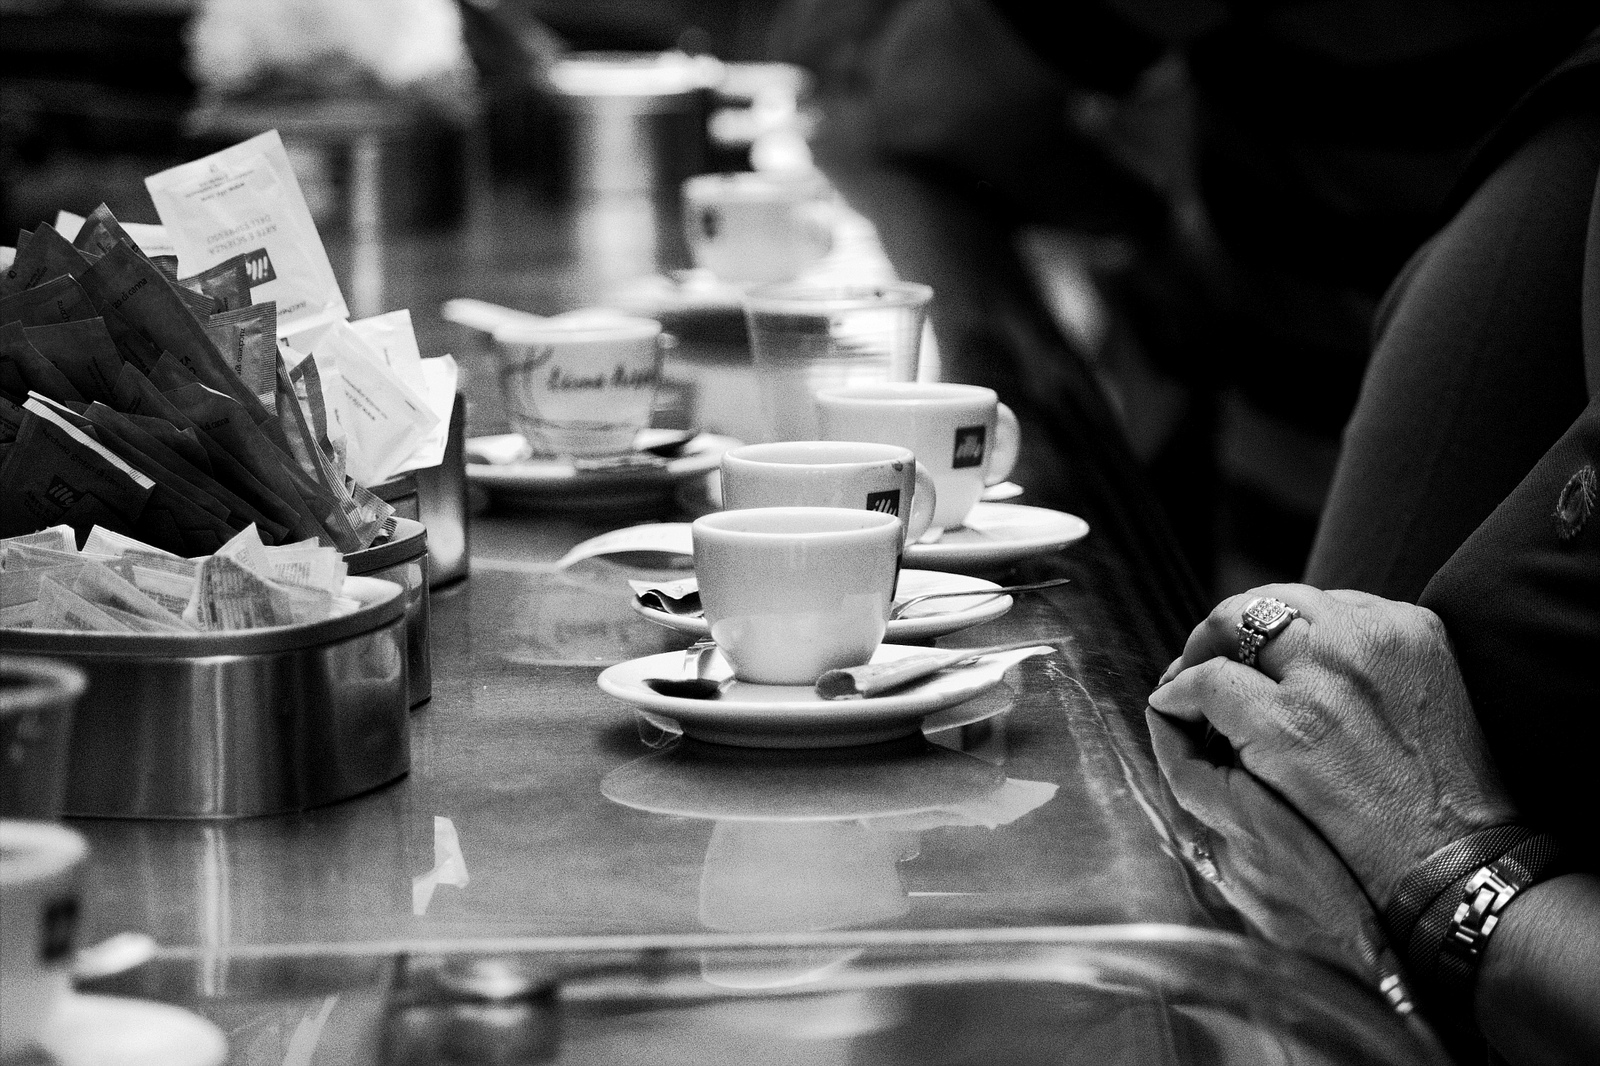 Cafes and coffee shops differentiate from one another thanks to customer experience